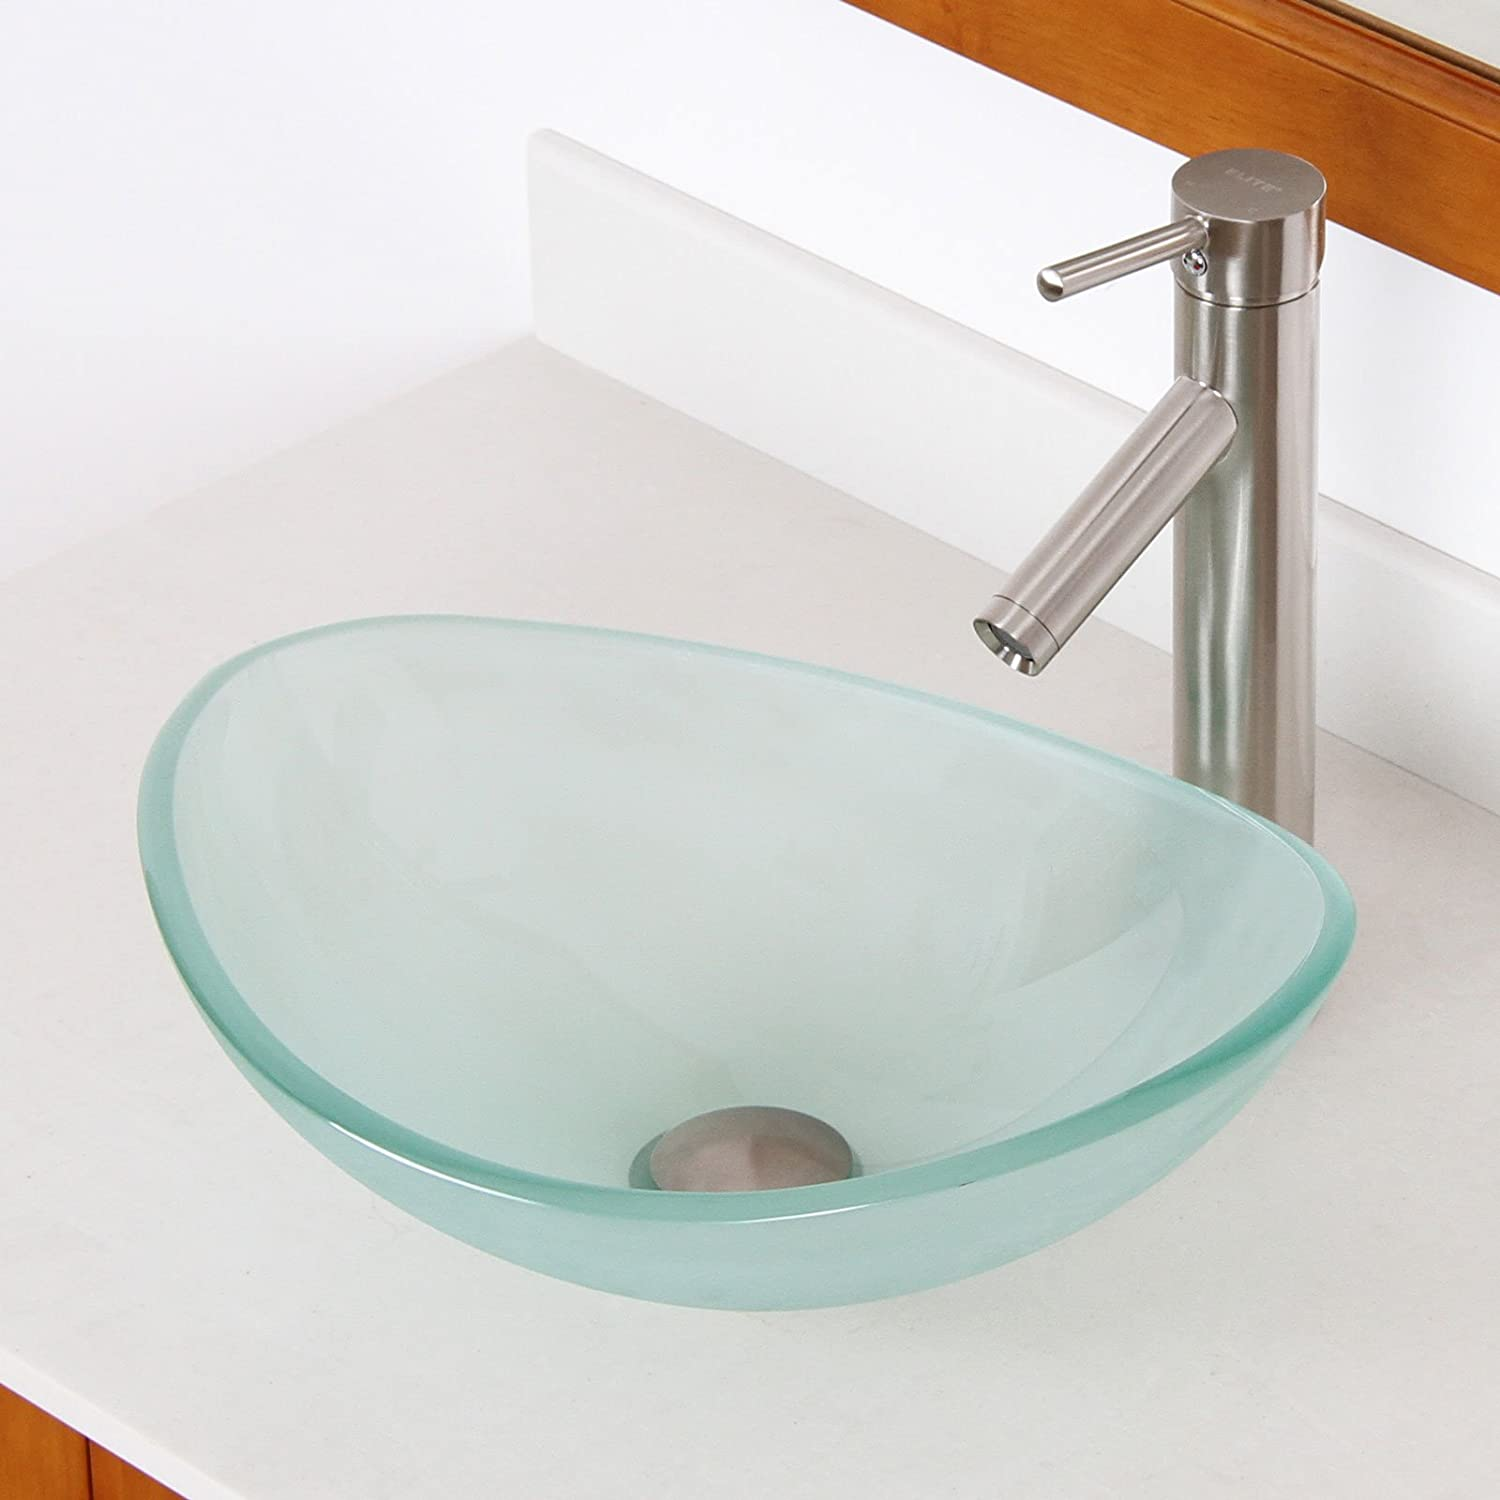 Bathroom available in 5 finishes vessel bathroom sinks msrp 425 - Mini Tempered Glass Boat Shaped Oval Bowl Bottom Vessel Bathroom Sink Sink Finish Frosted Amazon Com